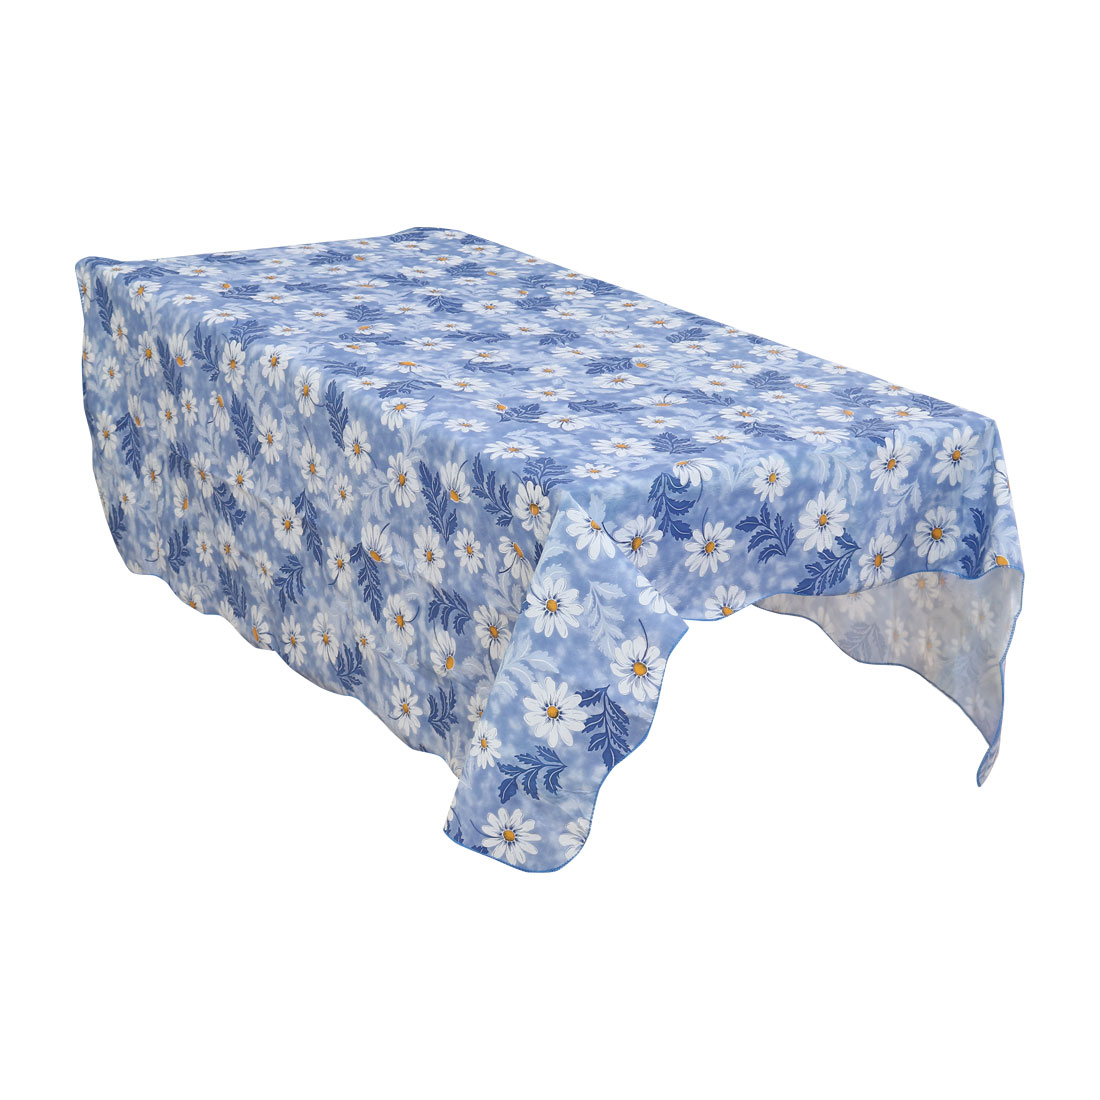 Home Picnic Daisy Pattern Water Resistant Oil-proof Tablecloth Table Cloth Cover Blue 41 x 60 Inch